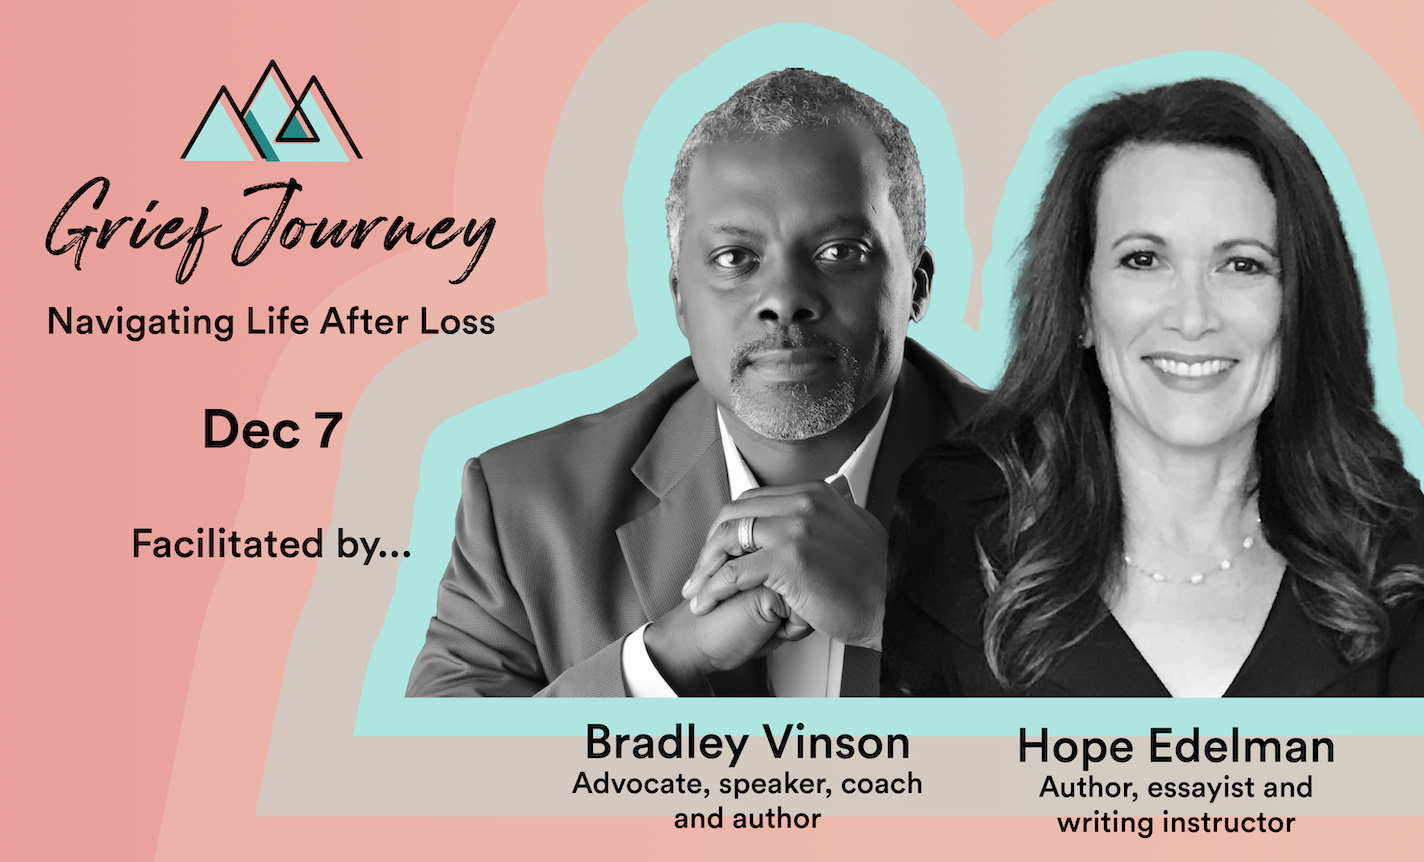 Grief Journey with Hope Edelman and Bradley Vinson